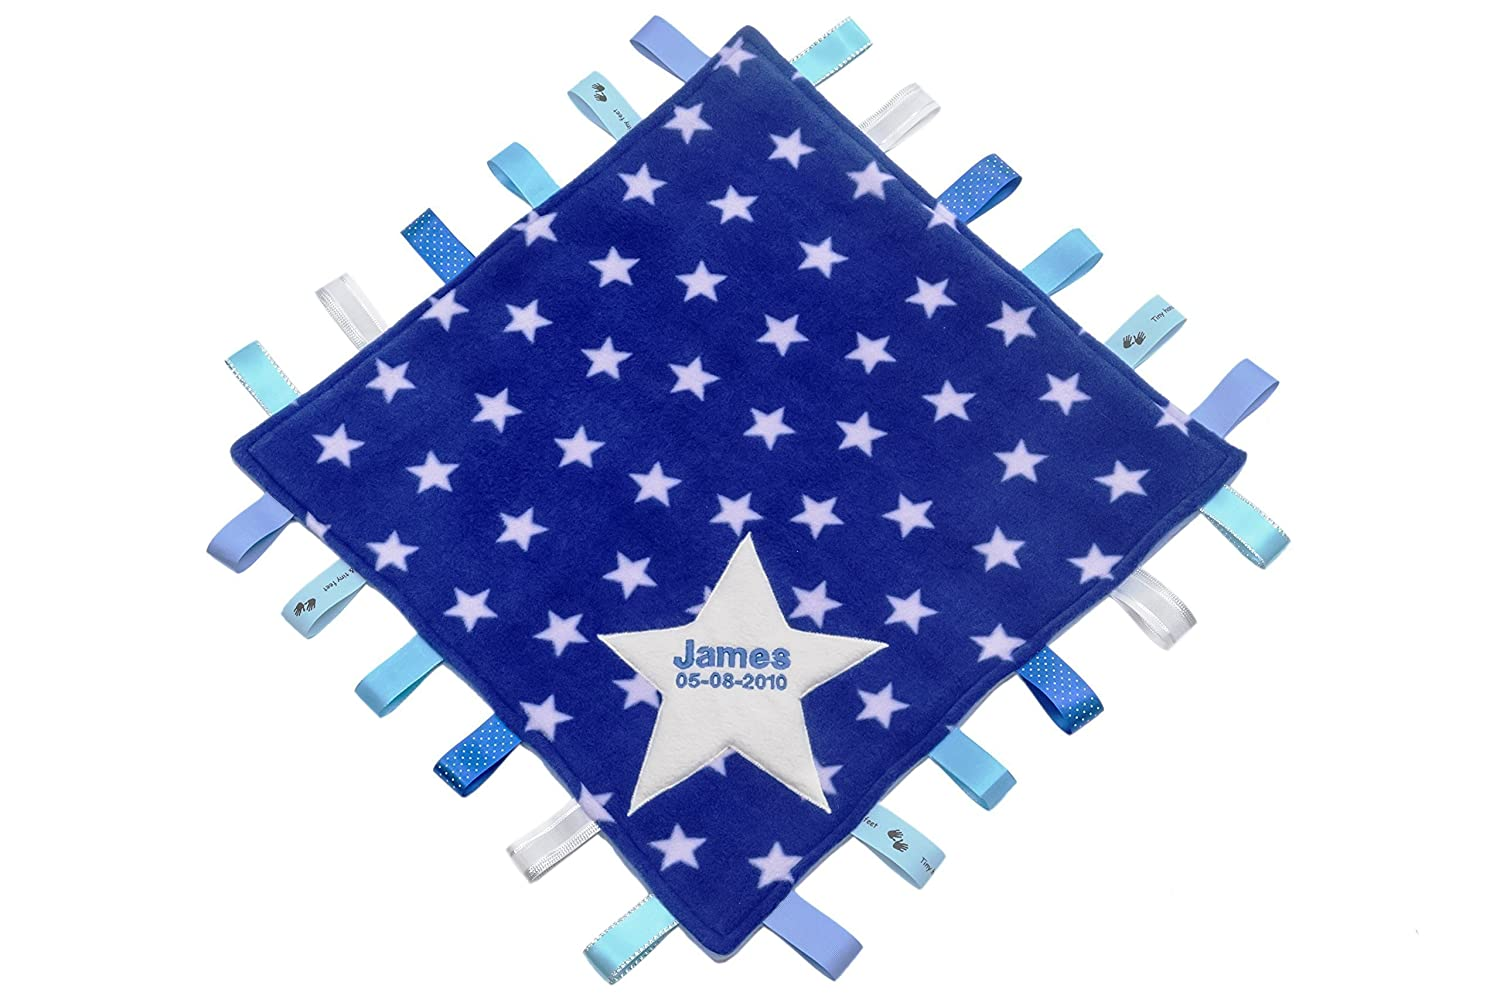 Personalised Starry Taggy Blanket